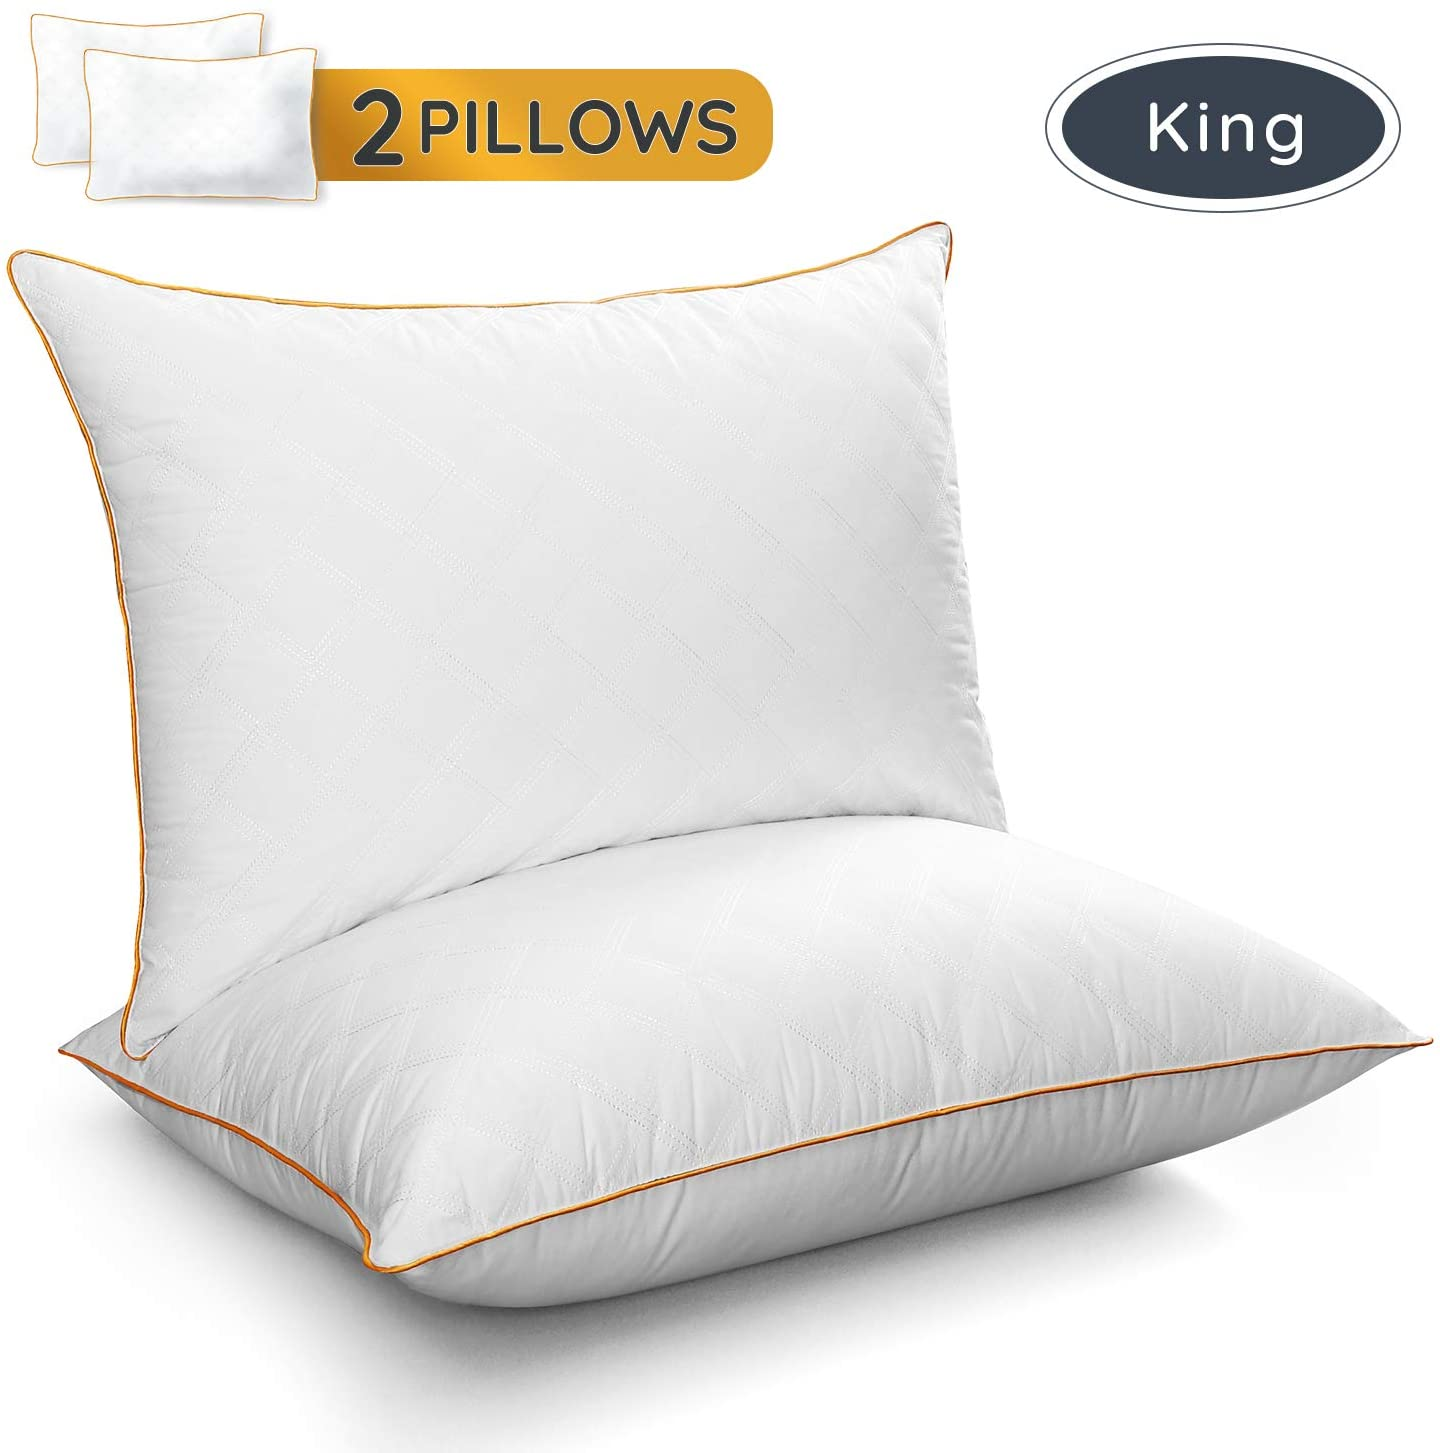 LUTE King Pillows Set of 2, Hotel Collection Gel Sleeping Pillow Cooling Pillow with Soft Premium Plush Fiber Fill Good for Side Back Stomach Sleepers, 20x36 inches